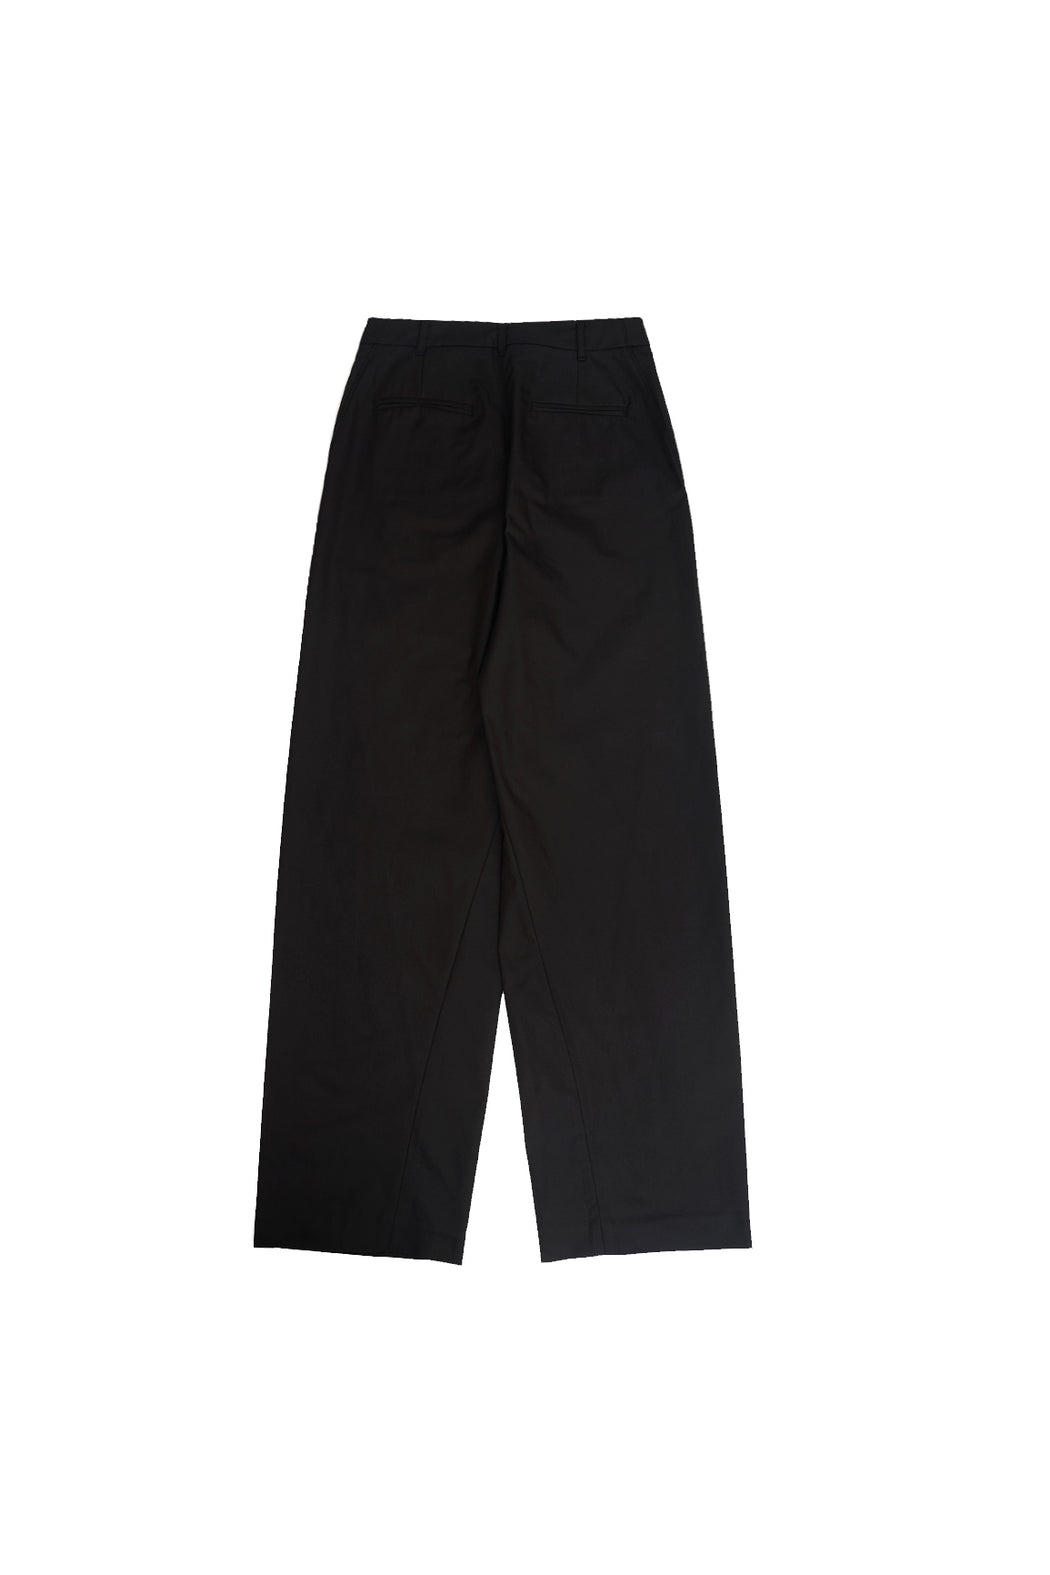 Twisted Pants - Black